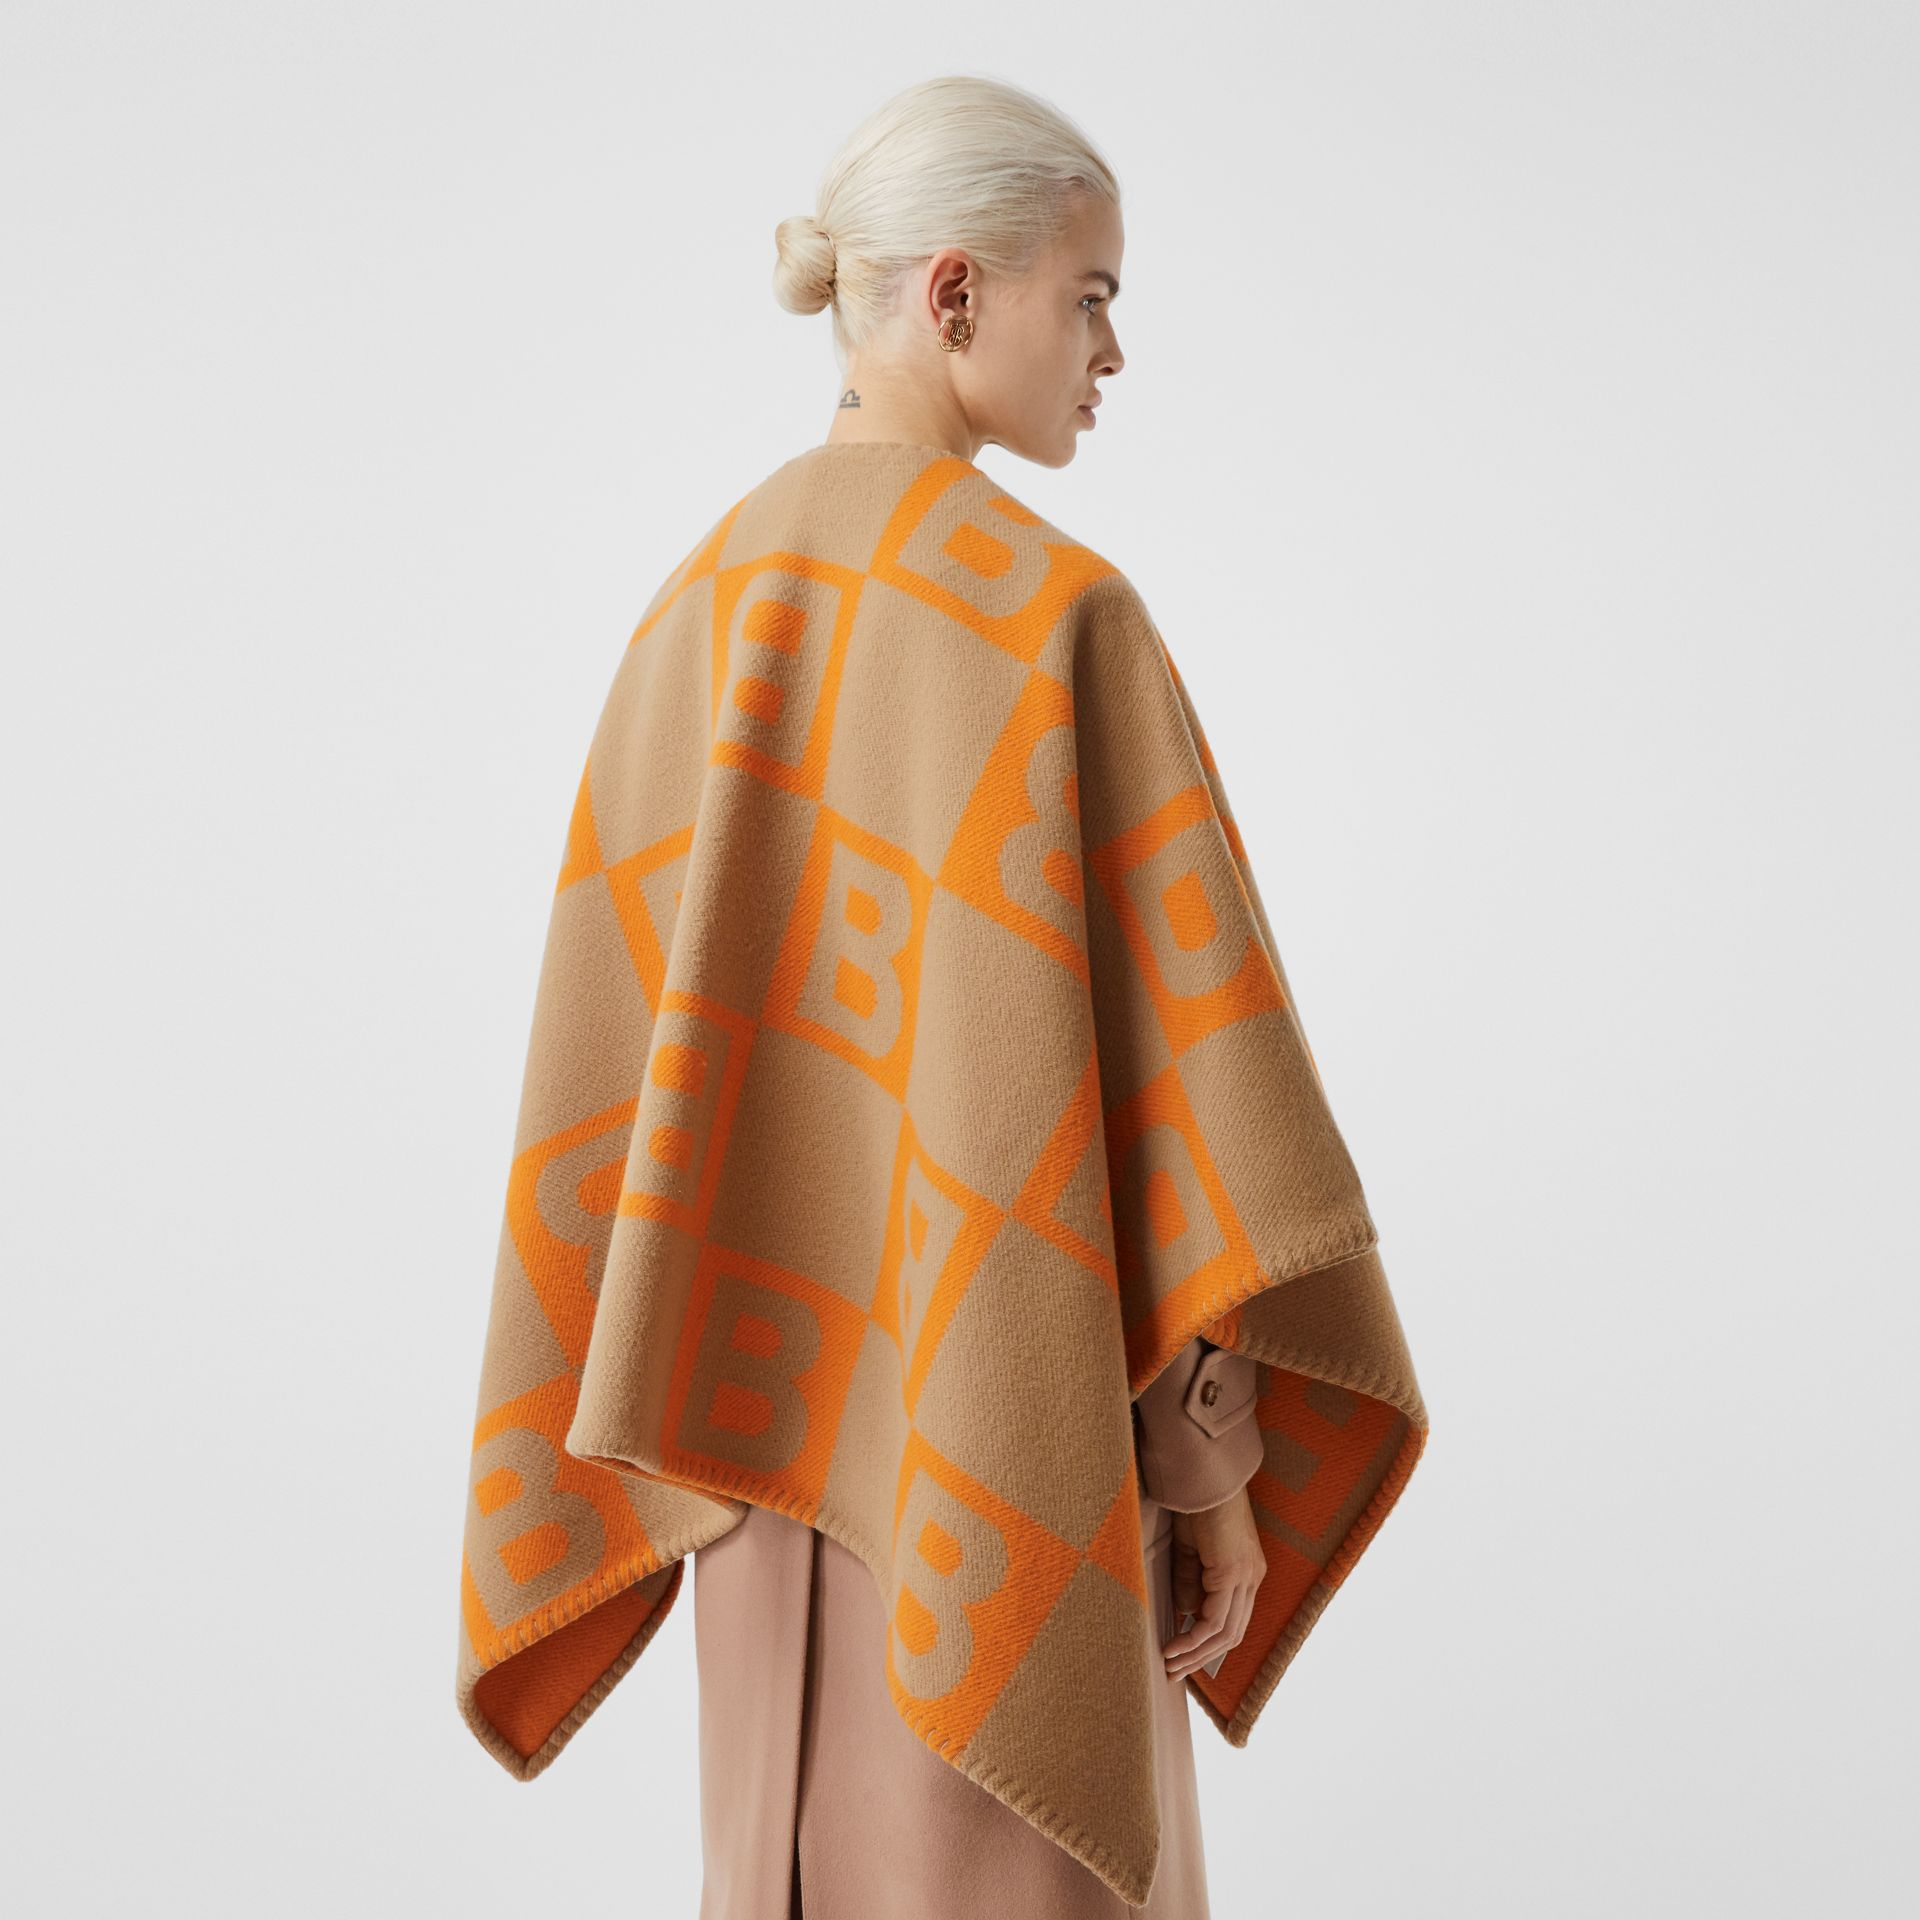 B Motif Merino Wool Cashmere Cape in Orange - Women | Burberry - gallery image 2